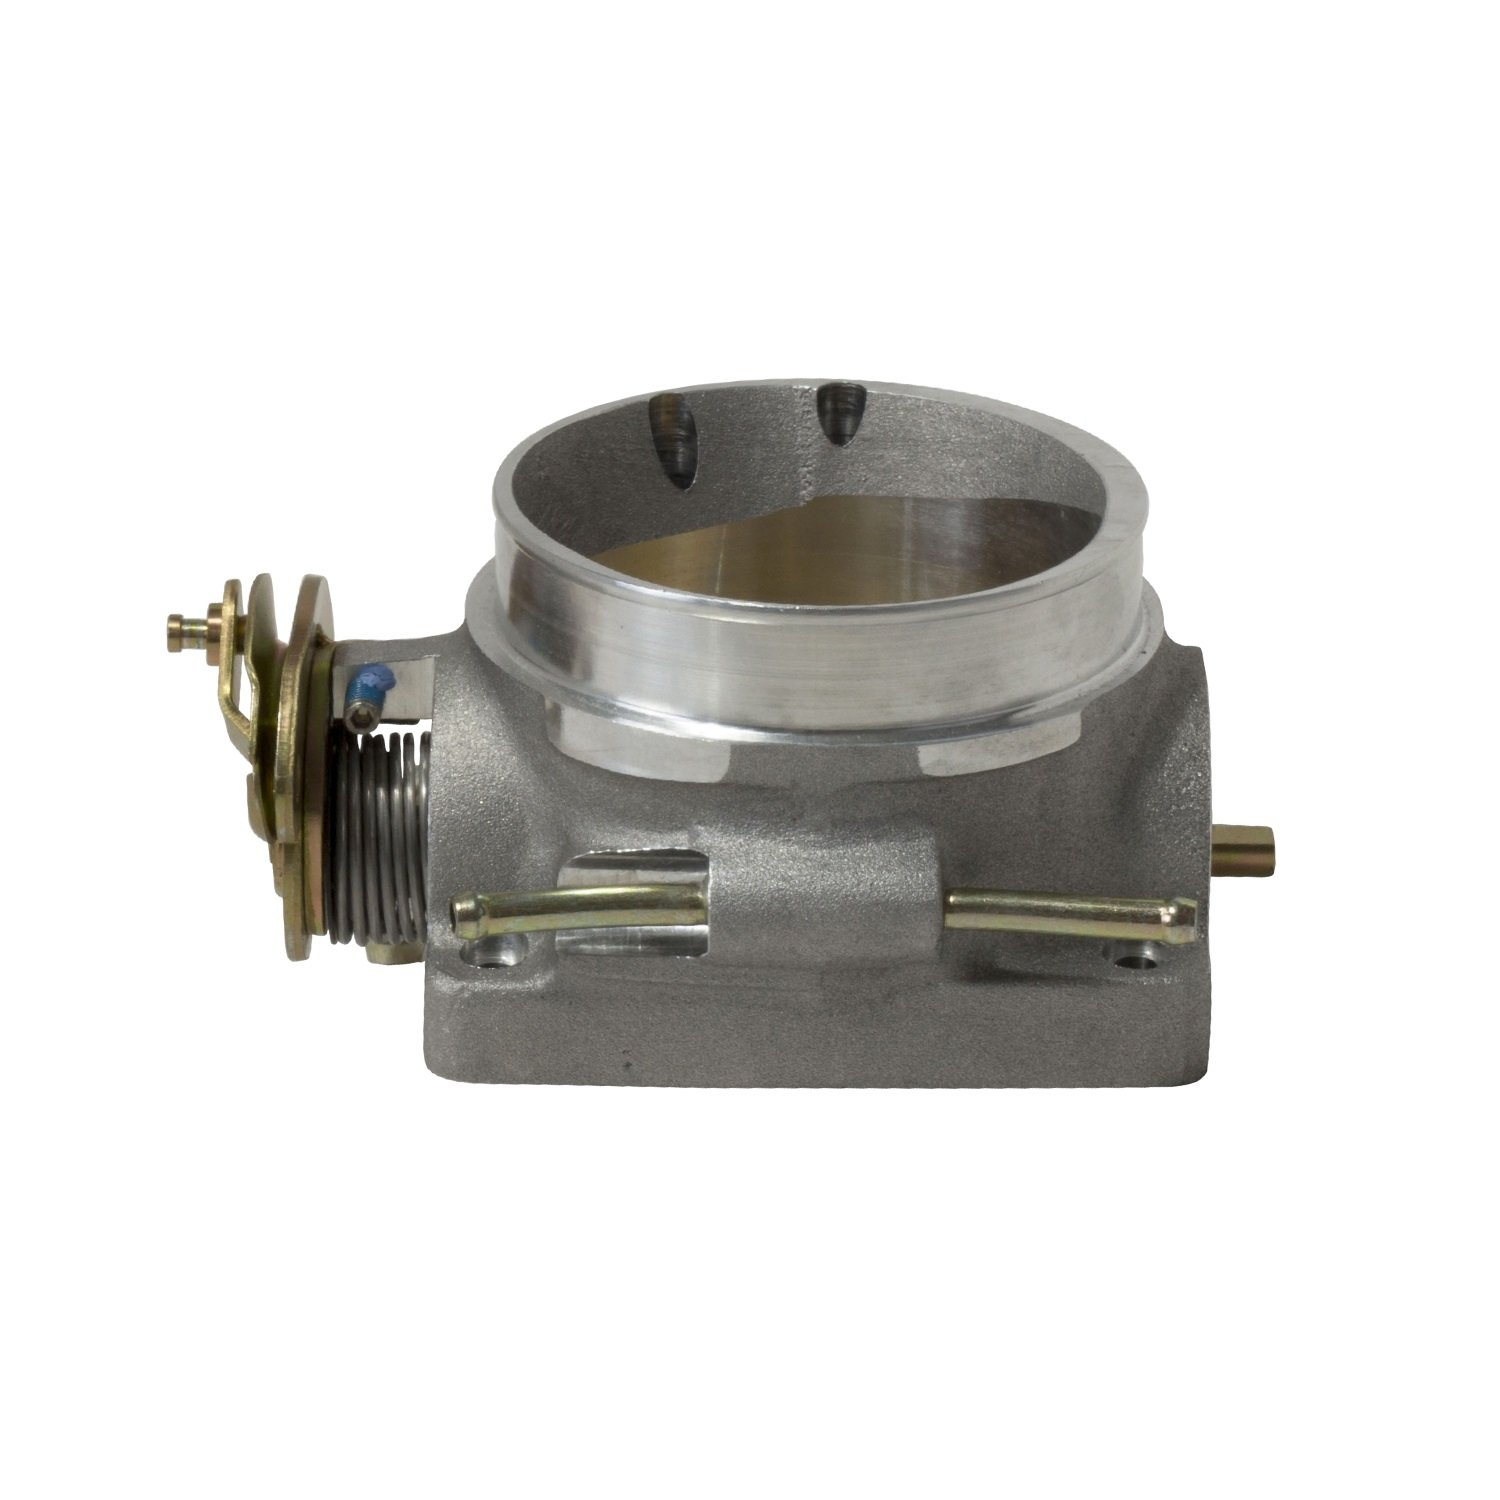 BBK 17090 85mm Throttle Body - High Flow Power Plus Series for GM LS1 Camaro, Firebird, GTO GM Full Size 4.8L,5.3L, 6.0L